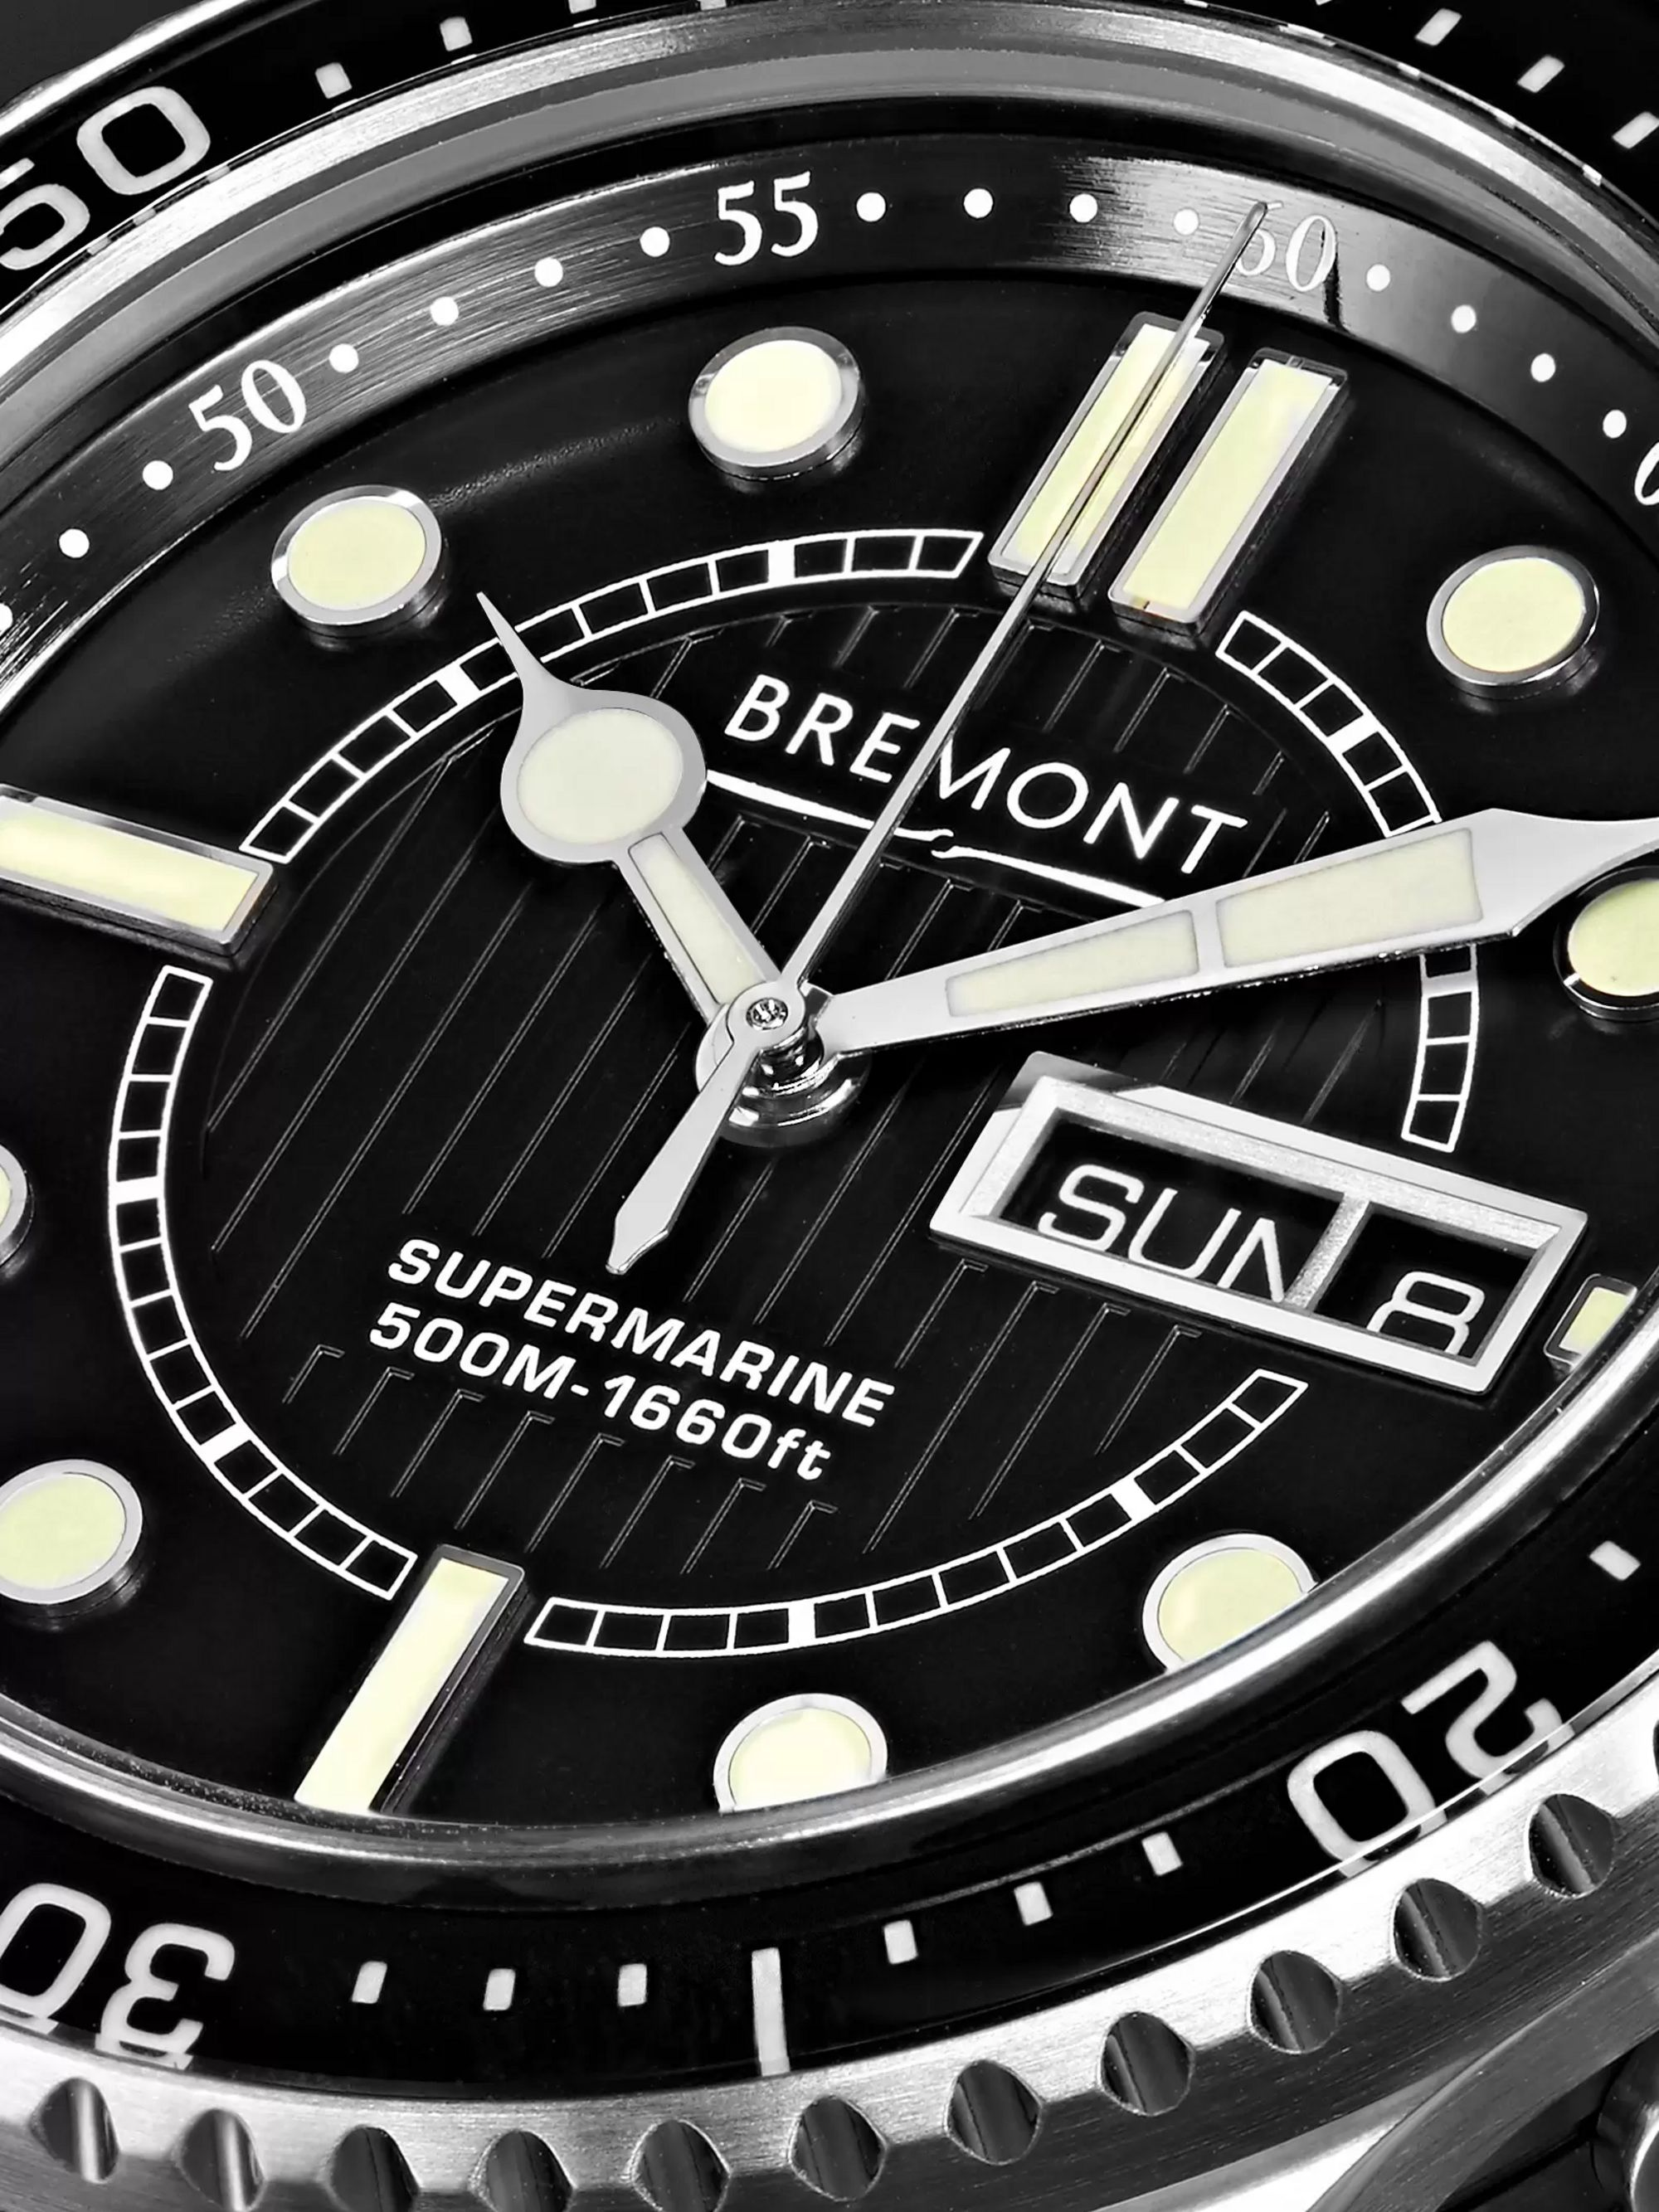 Bremont S500 Supermarine Automatic 43mm Stainless Steel and Rubber Watch, Ref. No. S500/BK